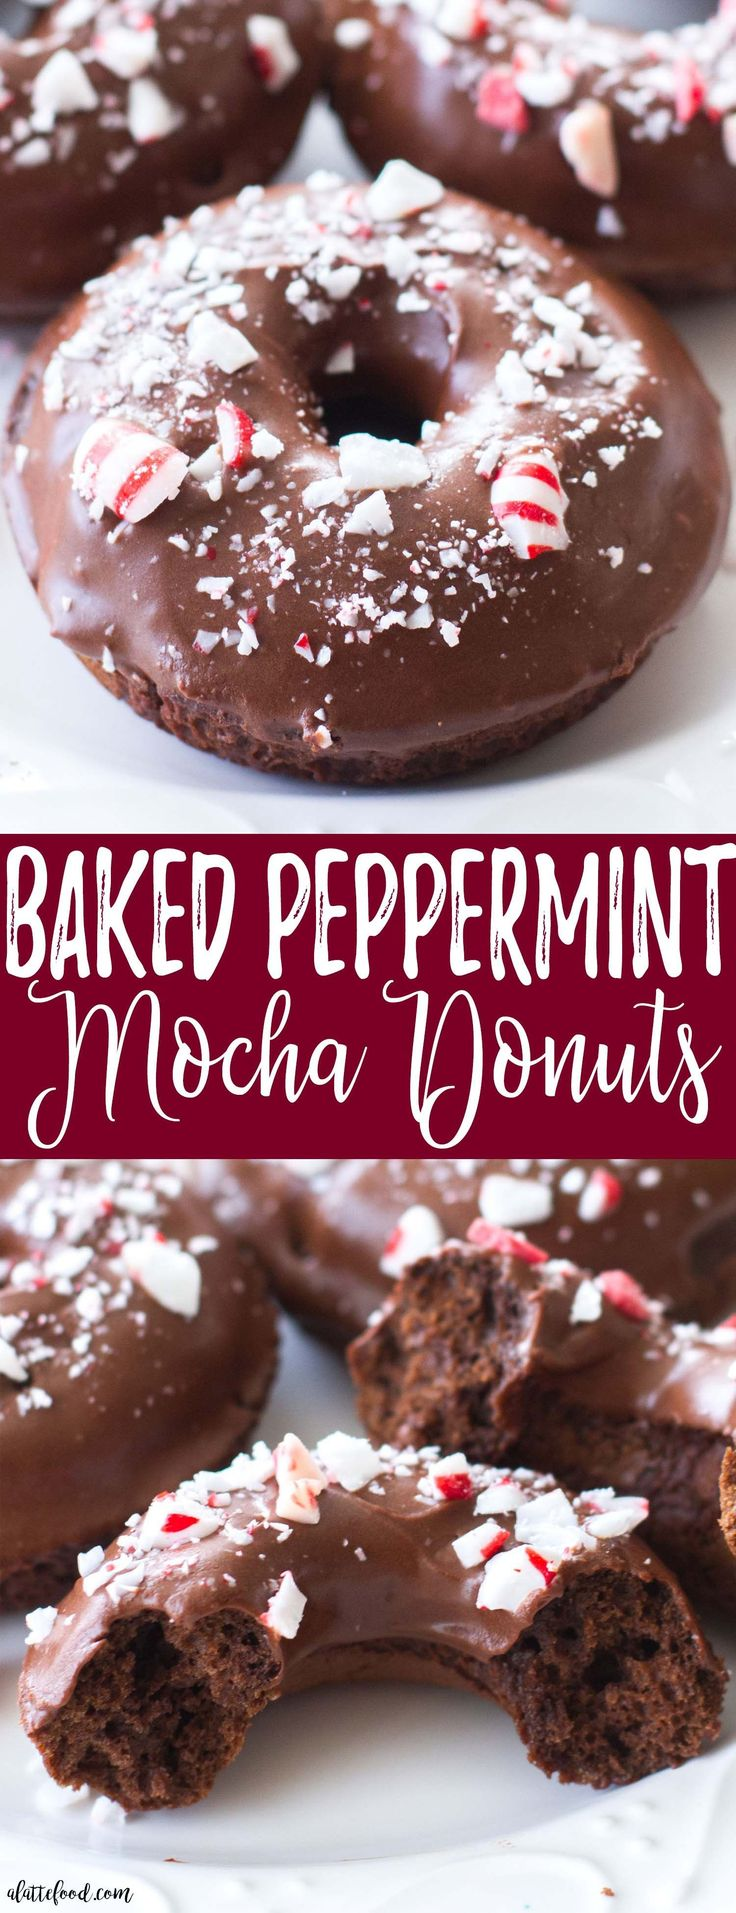 These easy baked chocolate donuts are filled with coffee and rich chocolate, and topped with a chocolate peppermint glaze. The perfect Christmas dessert! A simple chocolate donut recipe you're sure to love! #peppermint #mocha #donut #chocolate #christmas